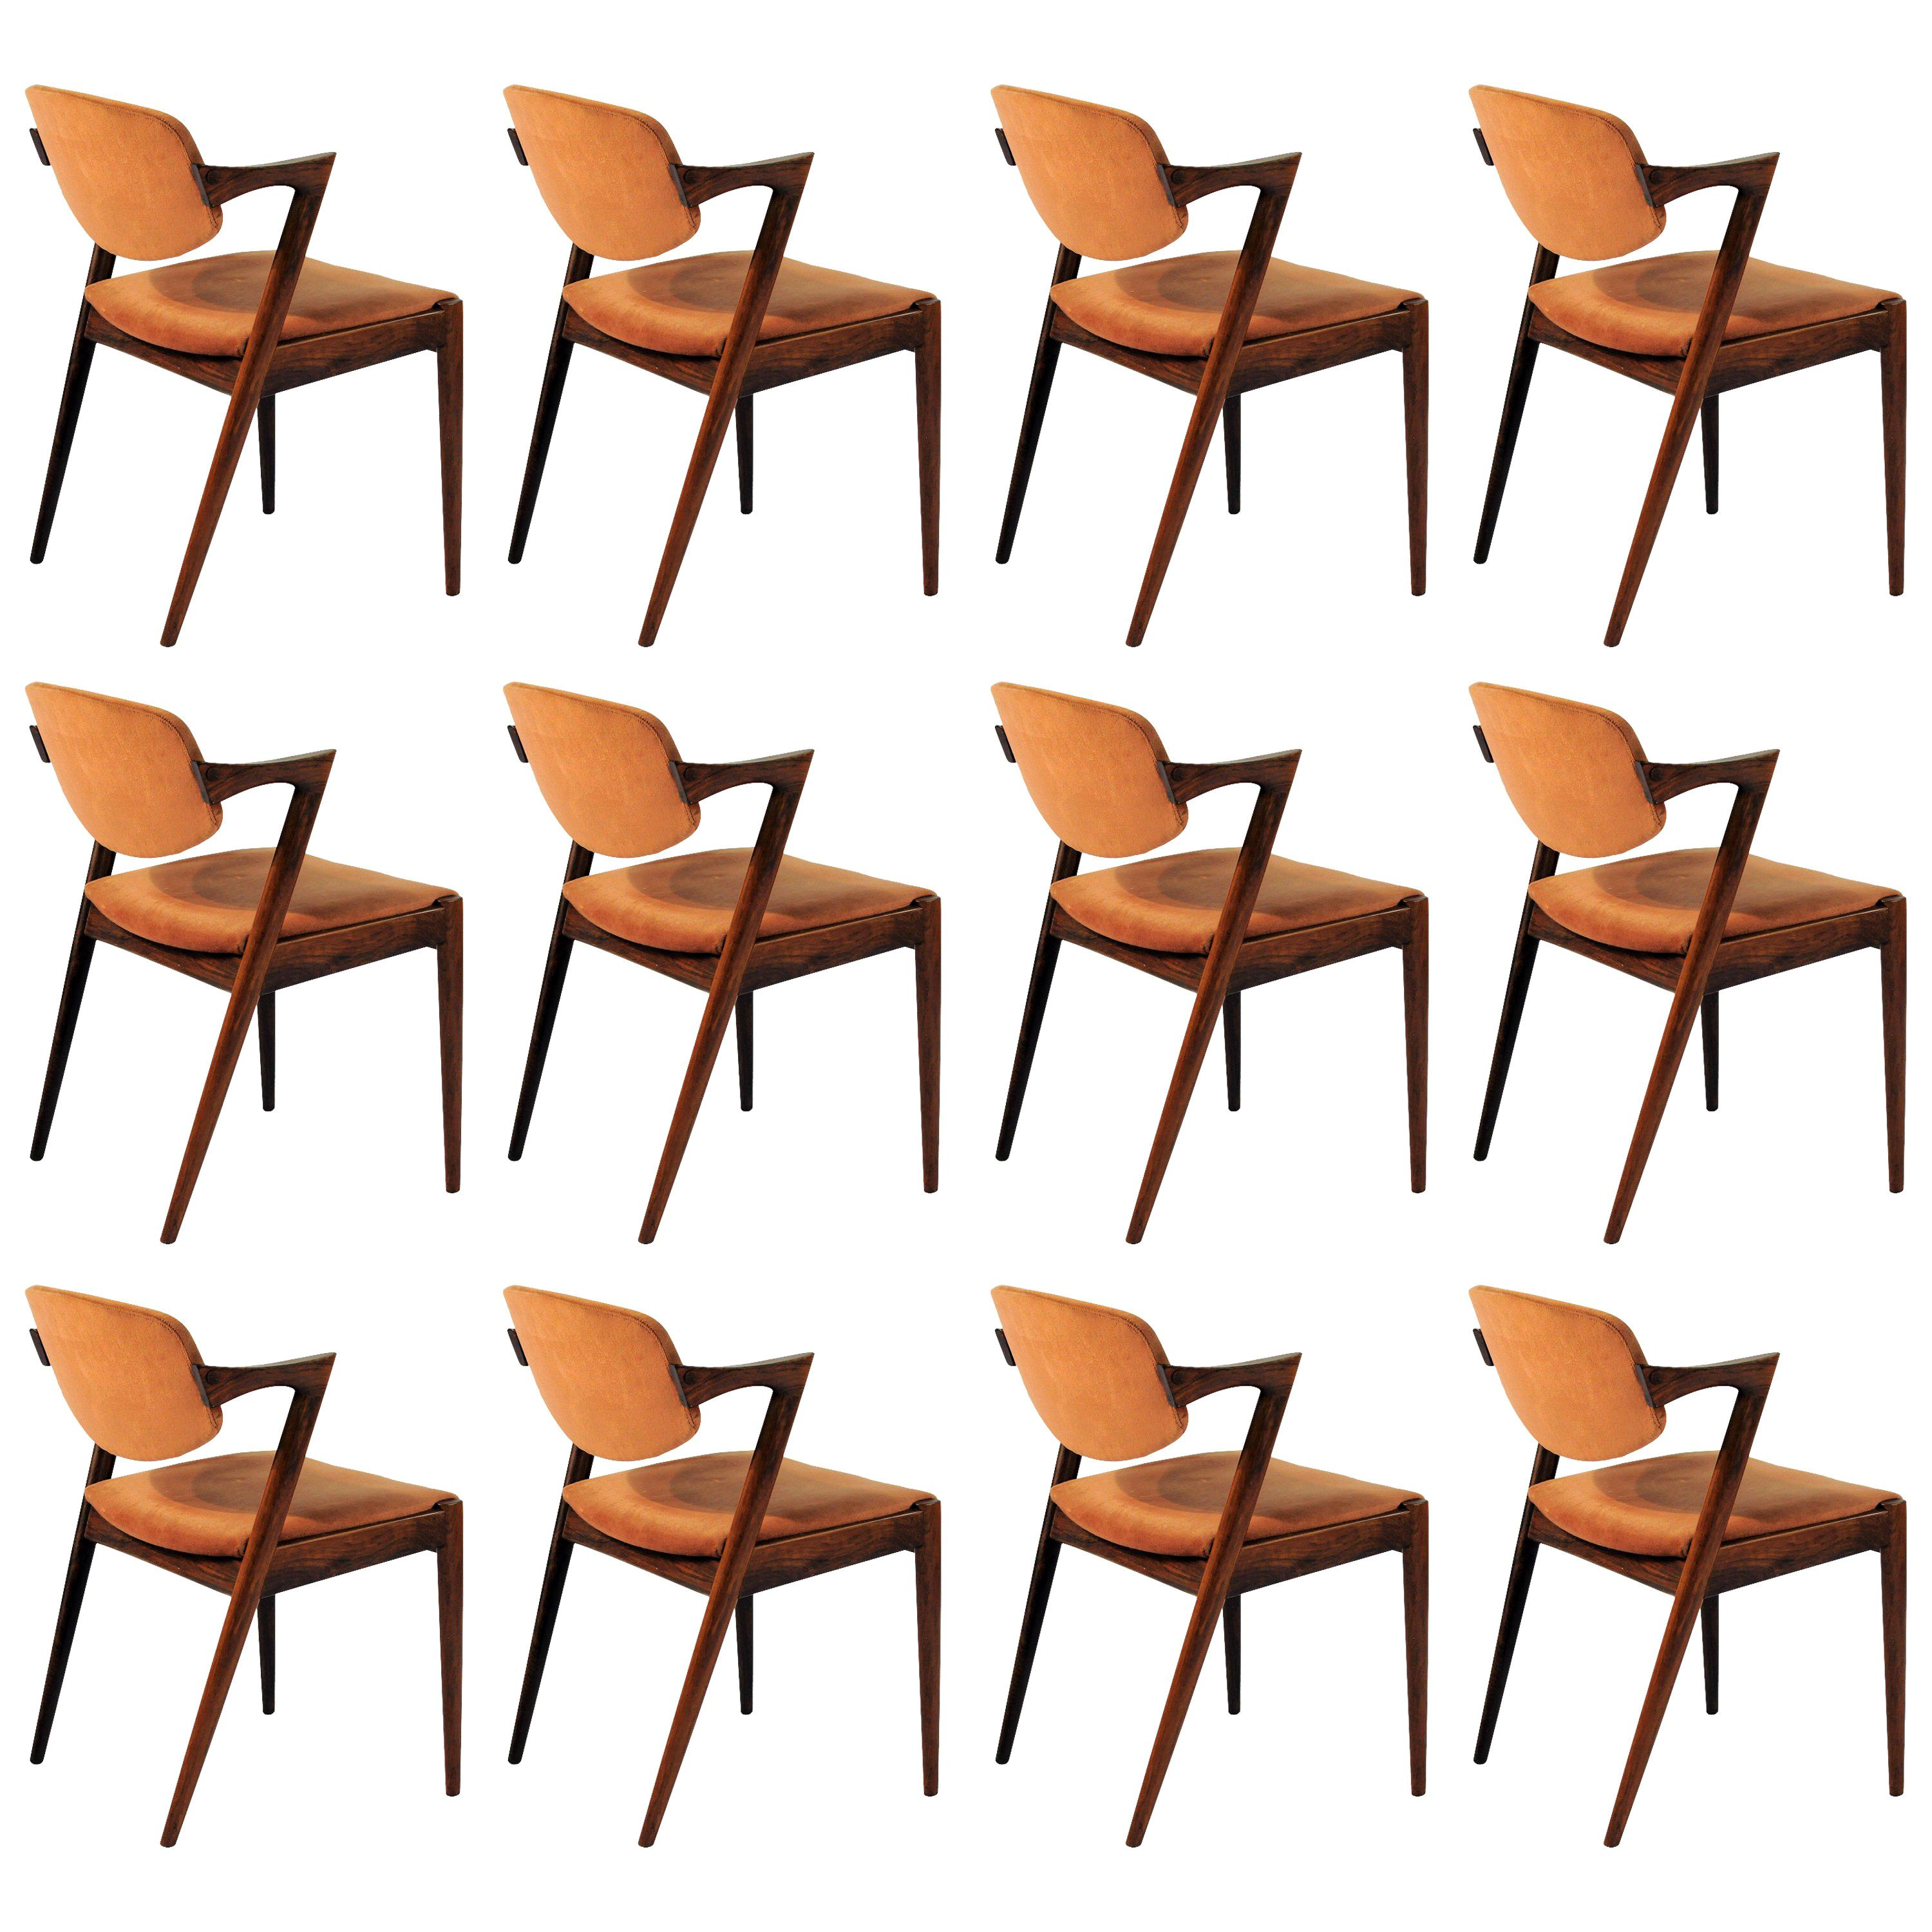 Twelve Kai Kristiansen Refinished Rosewood Dining Chairs inc. Reupholstery